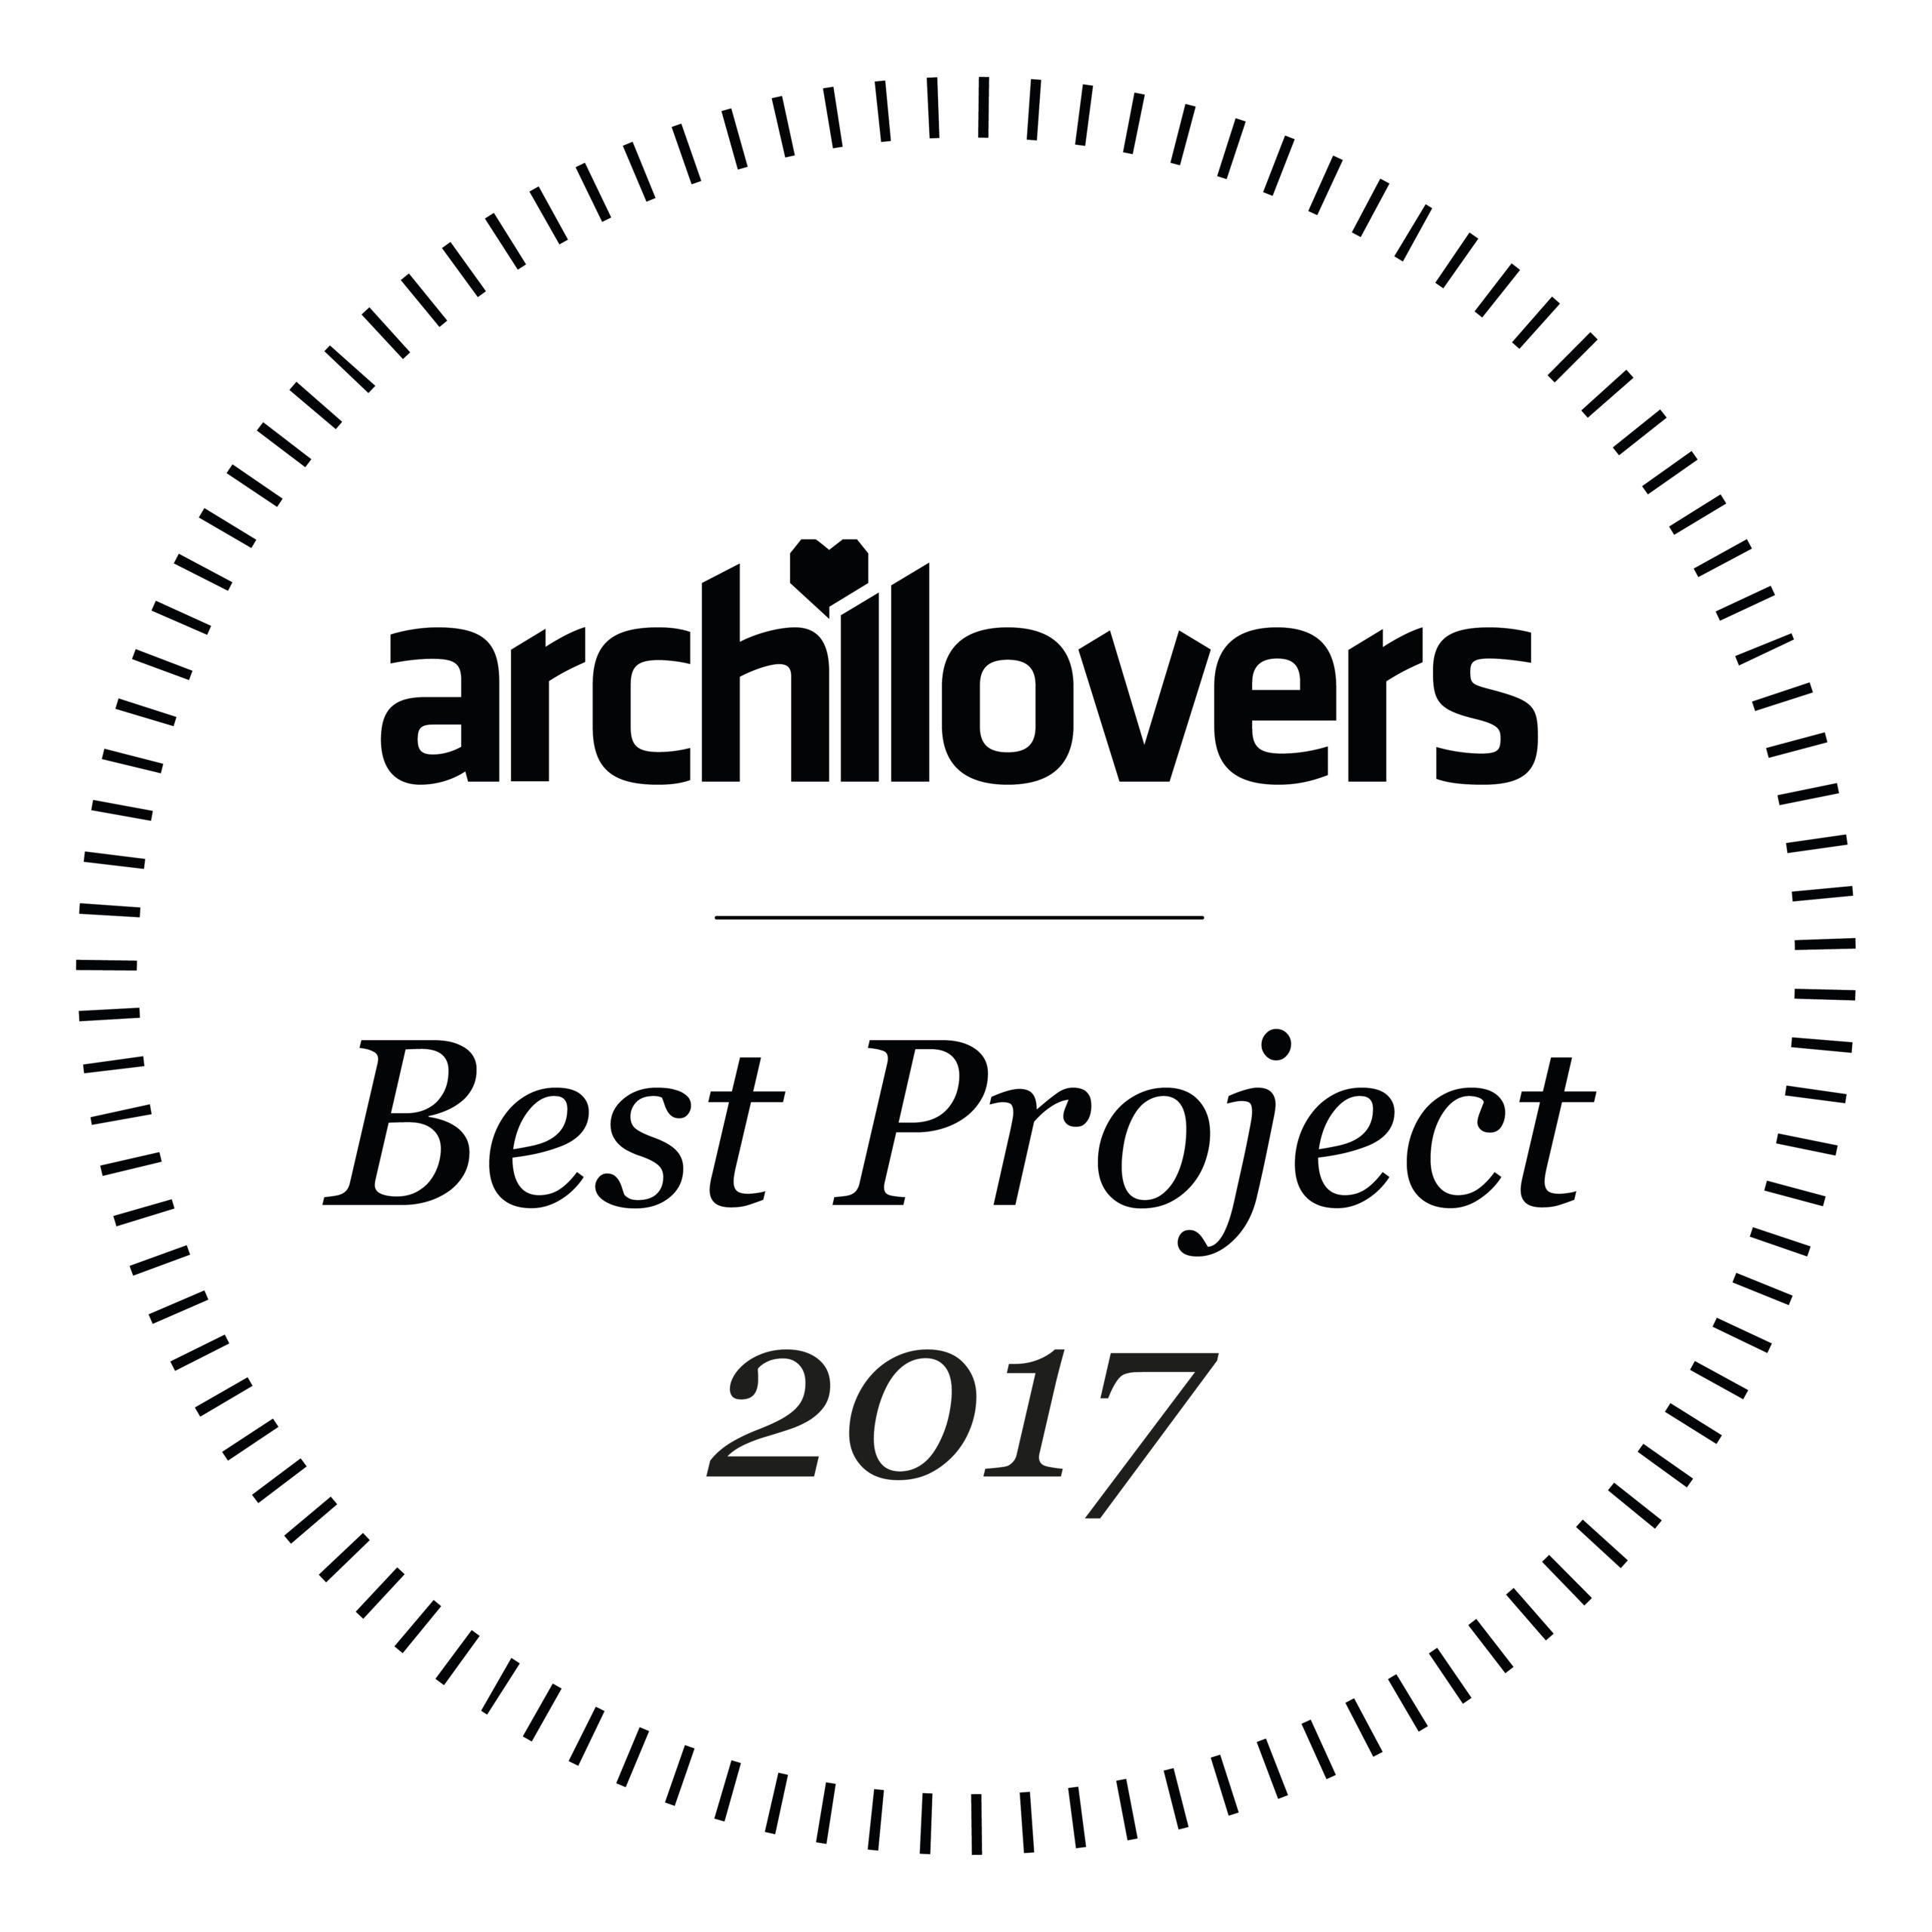 The Sleeping Attic is Best Project 2017 for Archilovers